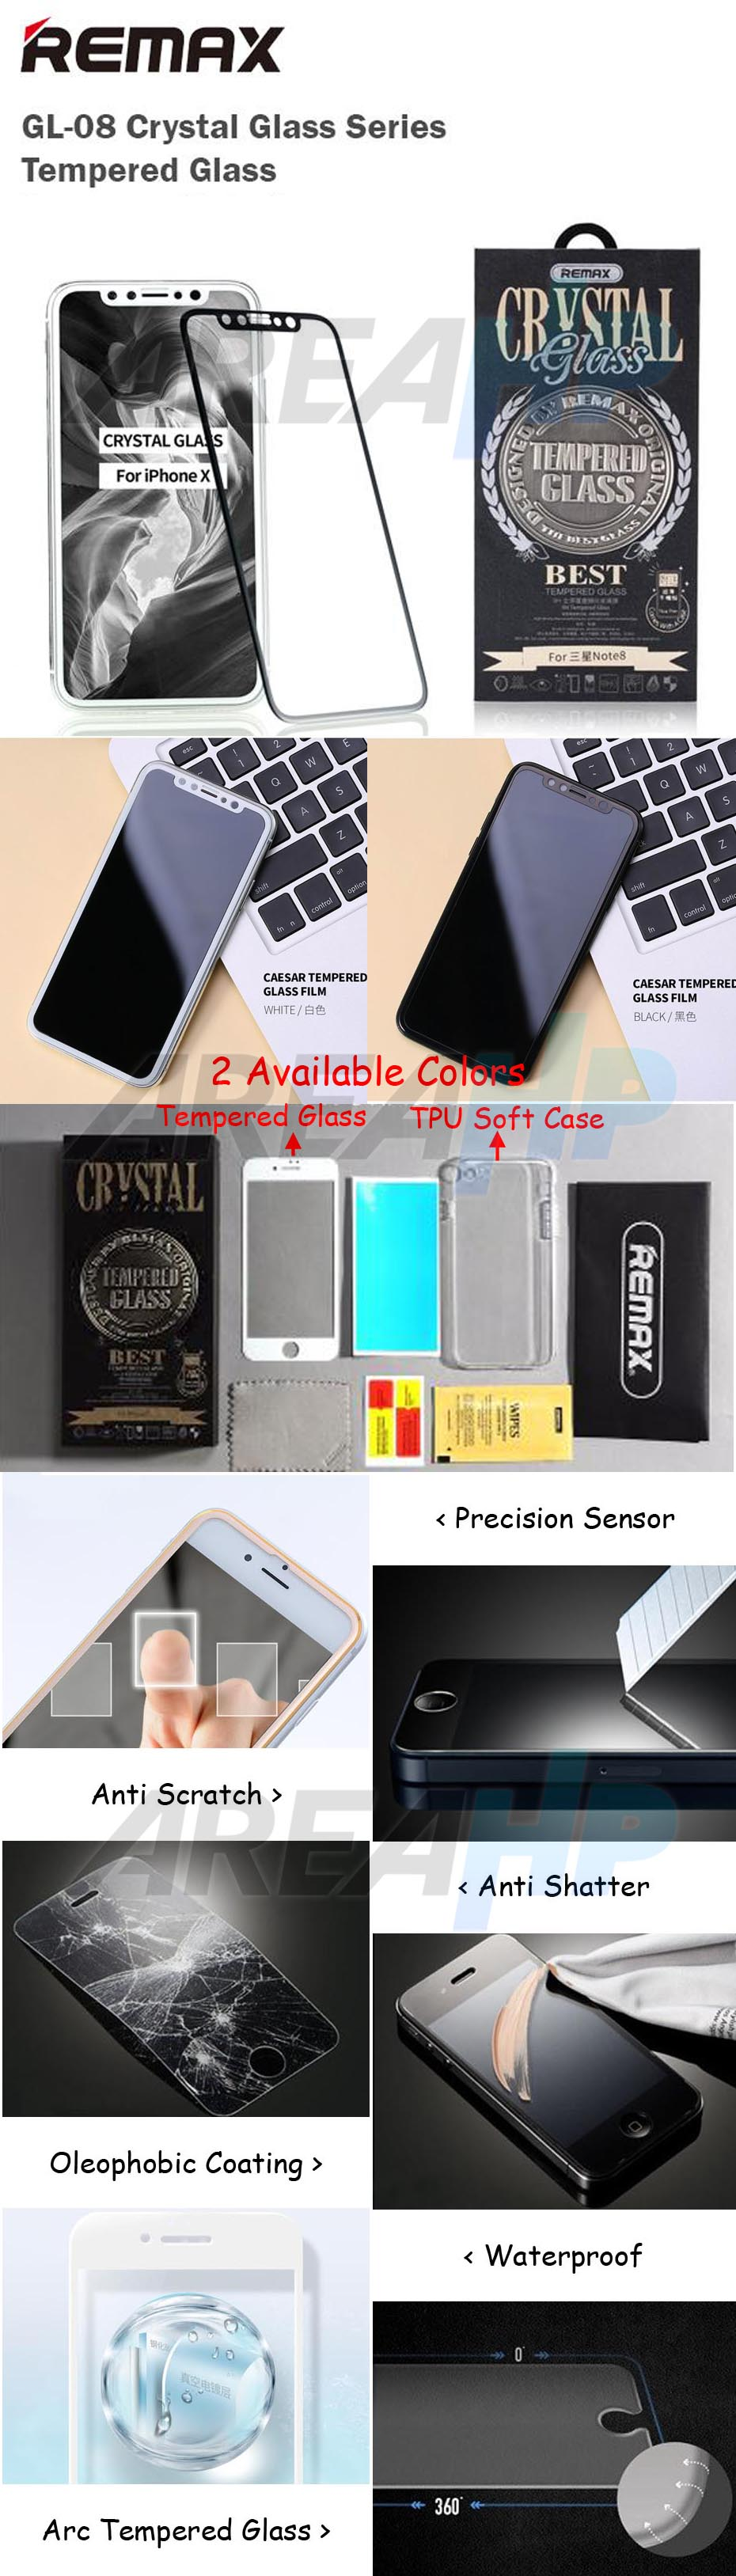 Remax Crystal Clear Set Tempered Glass iPhone GL-08 Overview